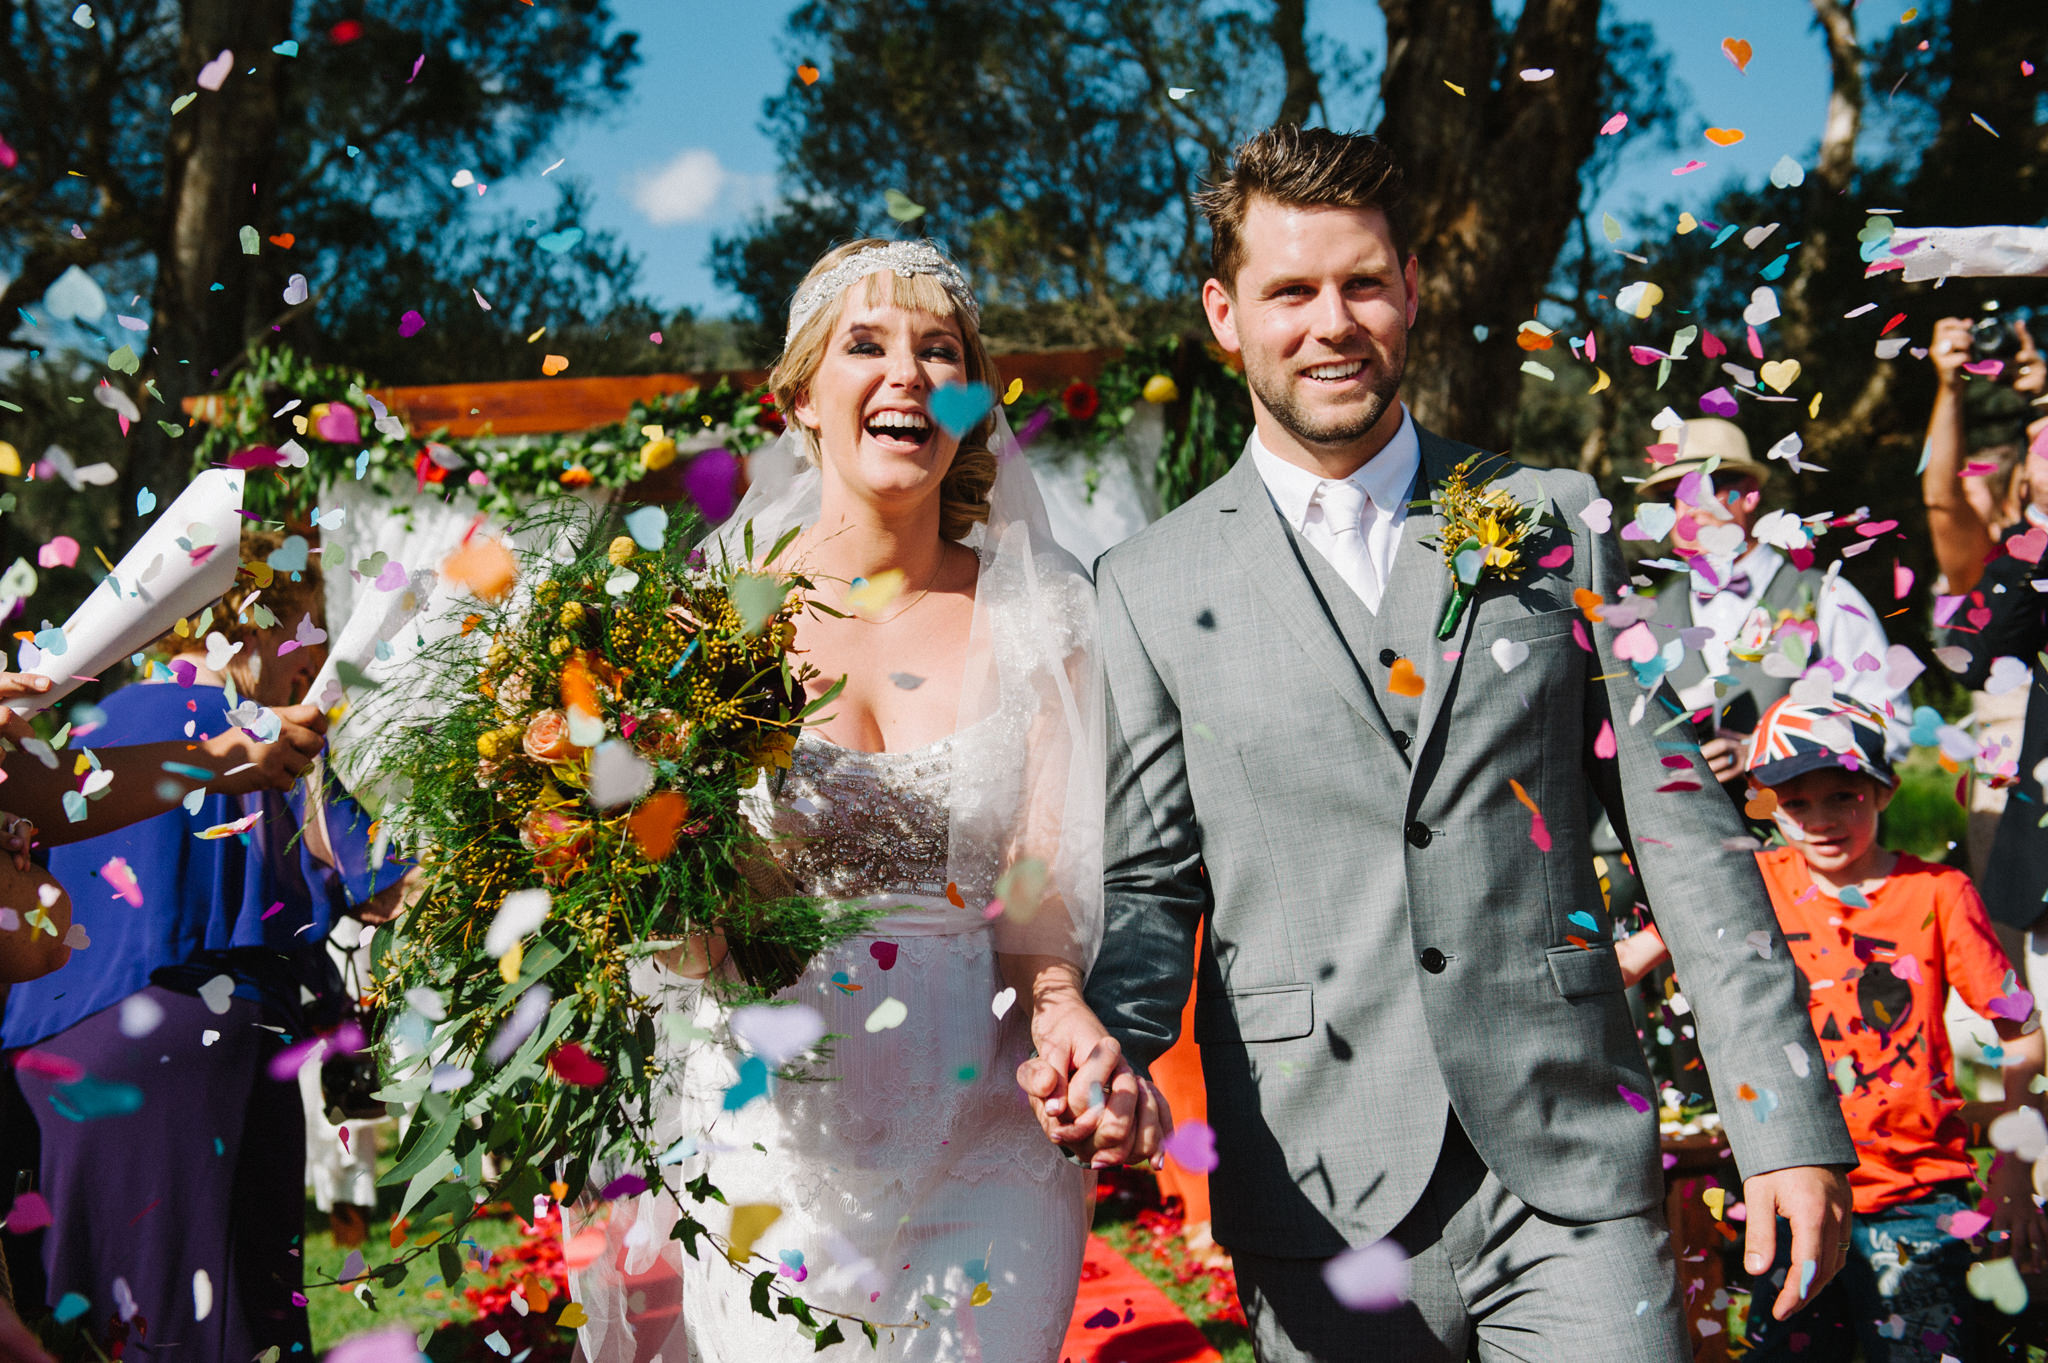 Happy newlyweds walking down aisle with rainbow confetti